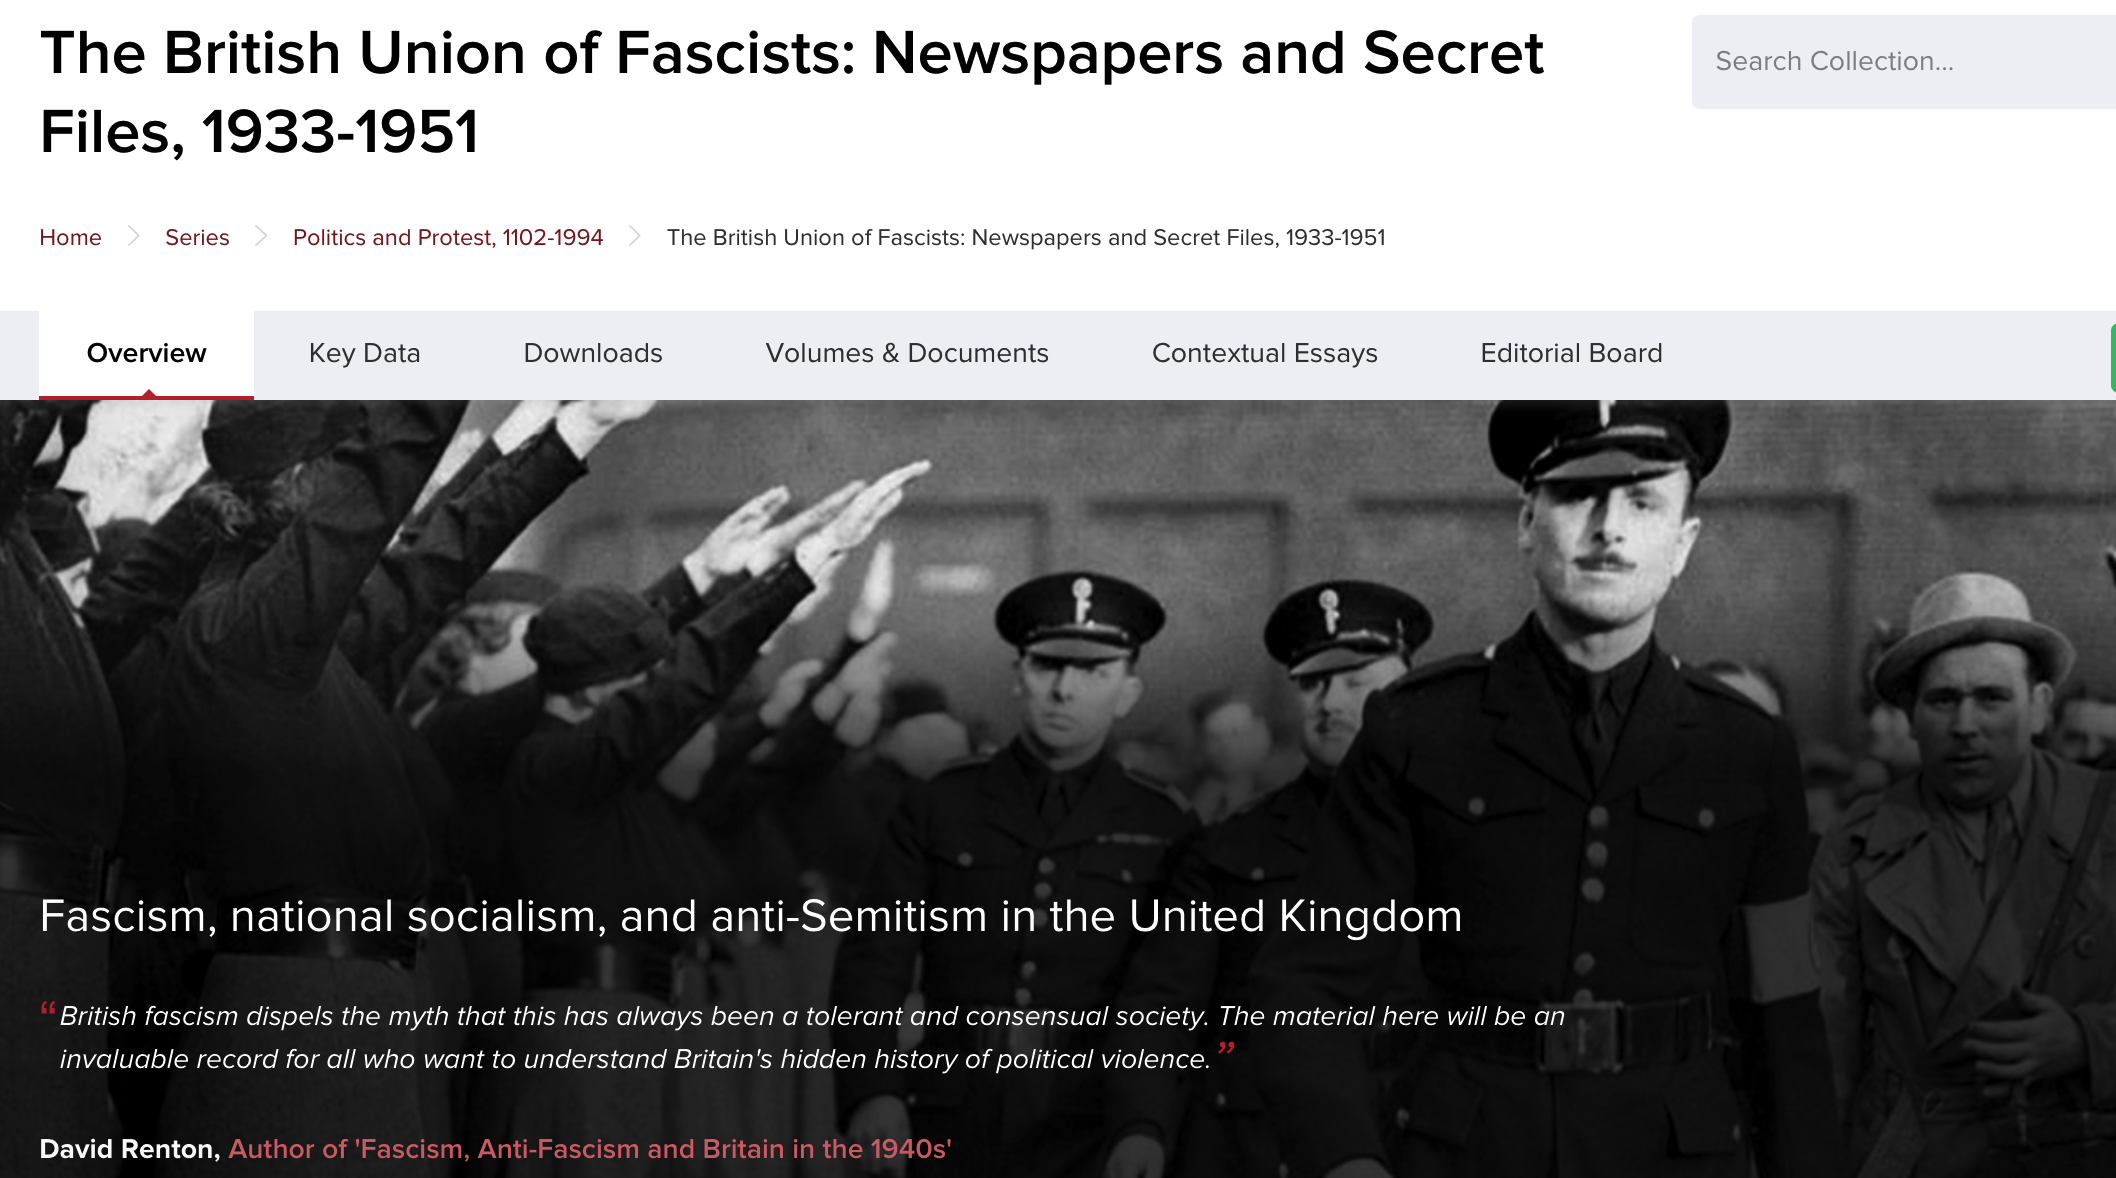 Homepage of the resource, depicting a black and white photo of Oswald Mosley walking past supporters showing the fascit salute.